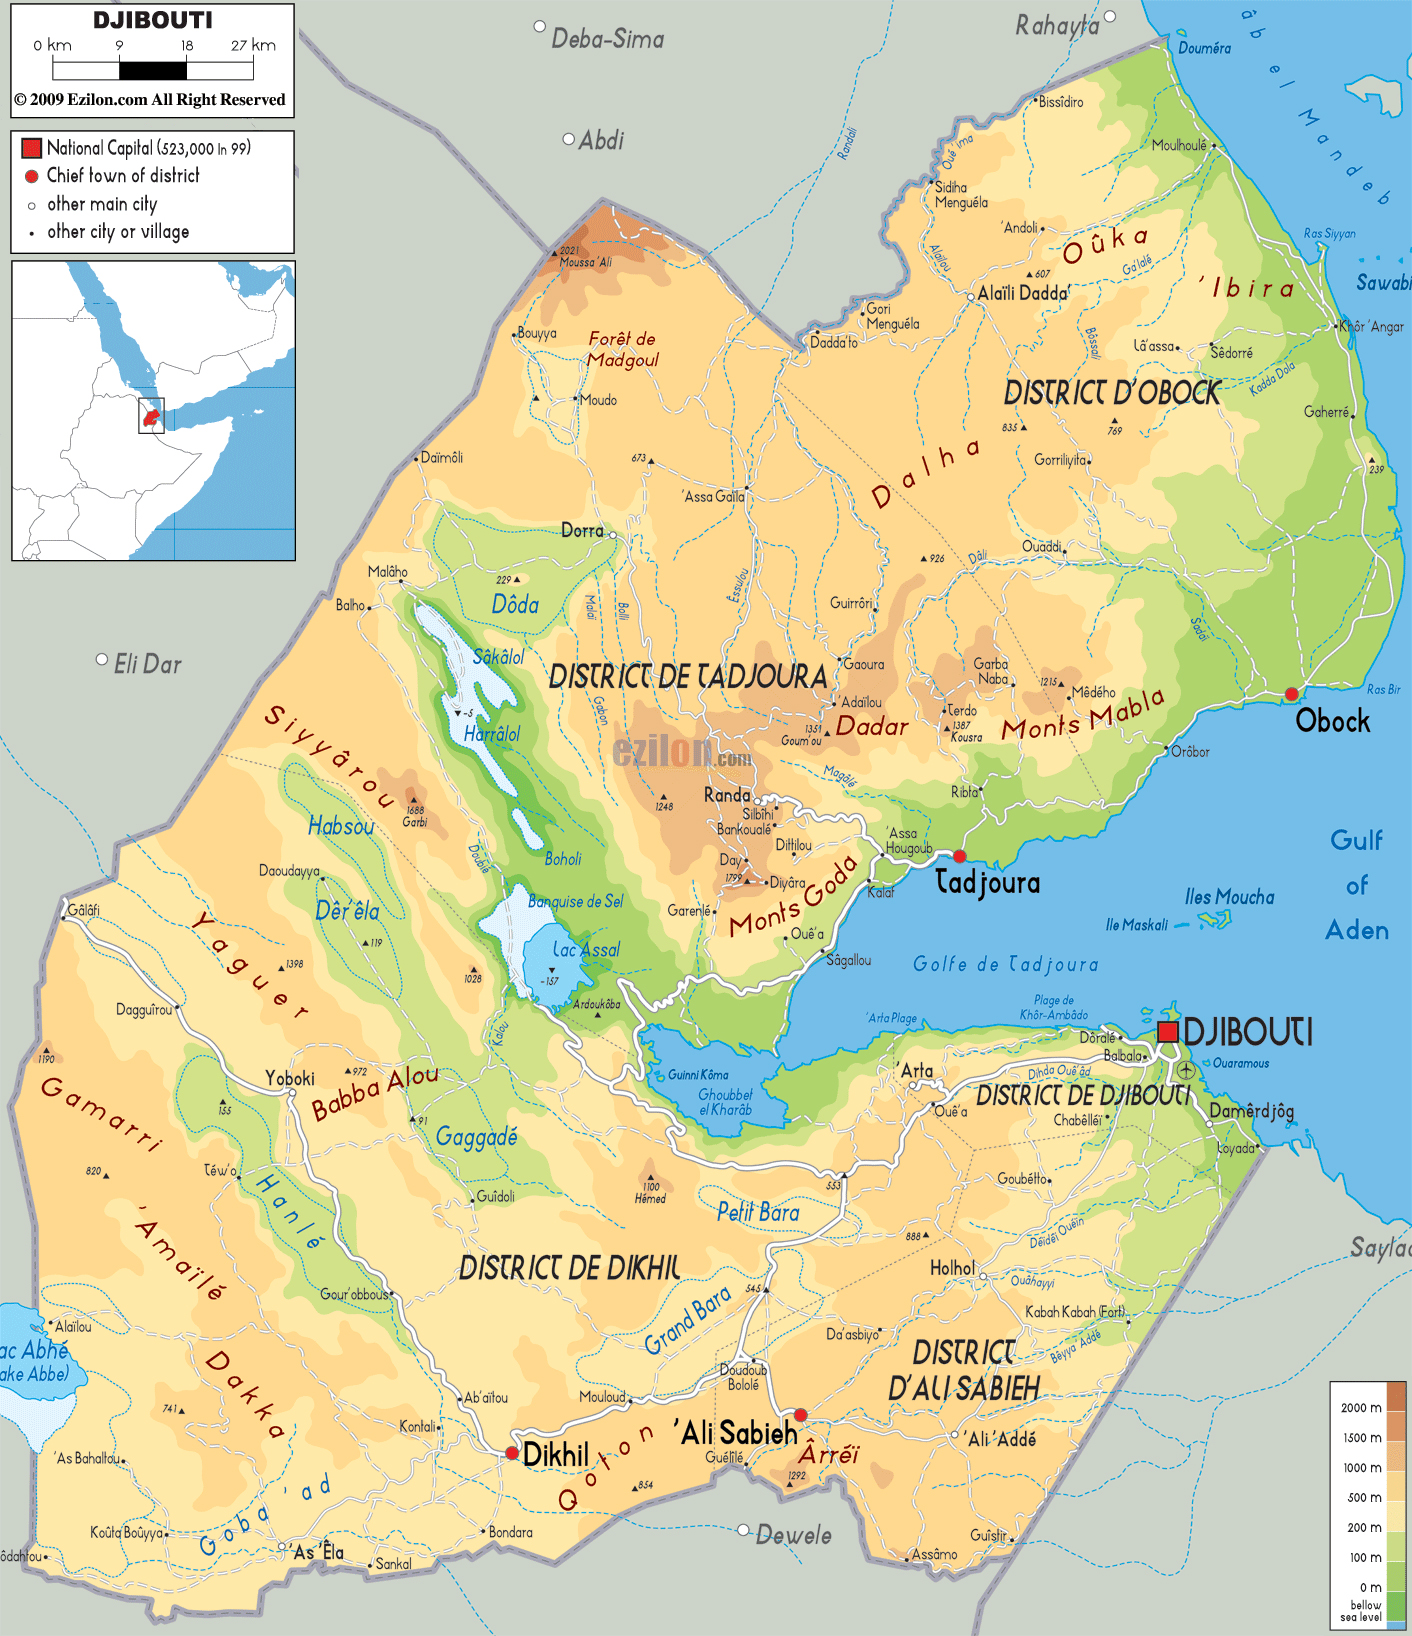 Djibouti On Africa Map.Maps Of Djibouti Map Library Maps Of The World